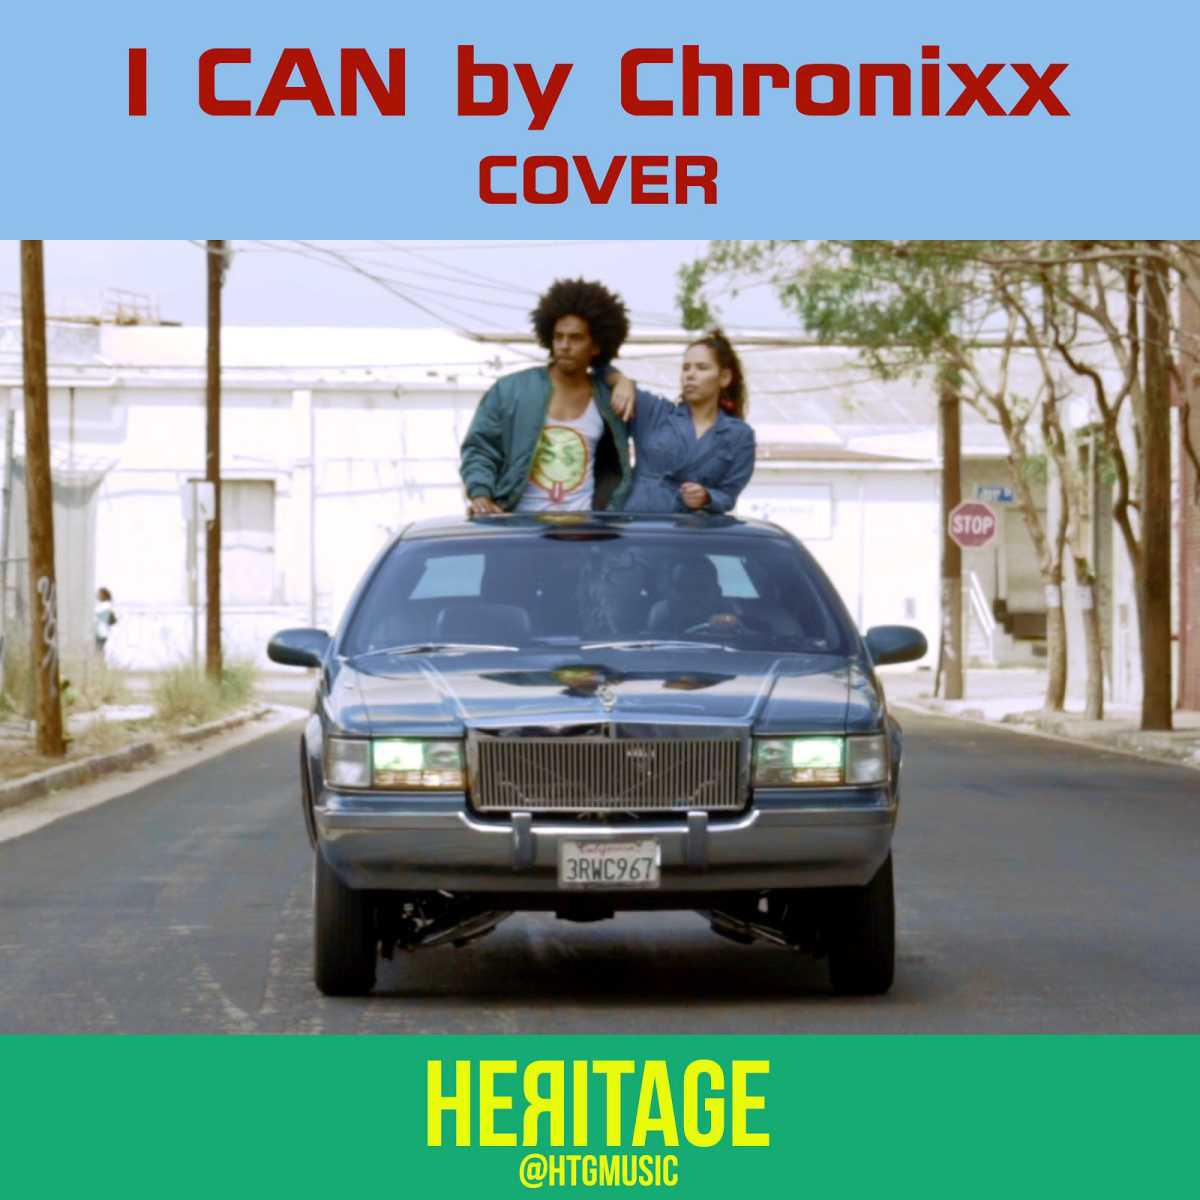 HEЯITAGE releases their new single